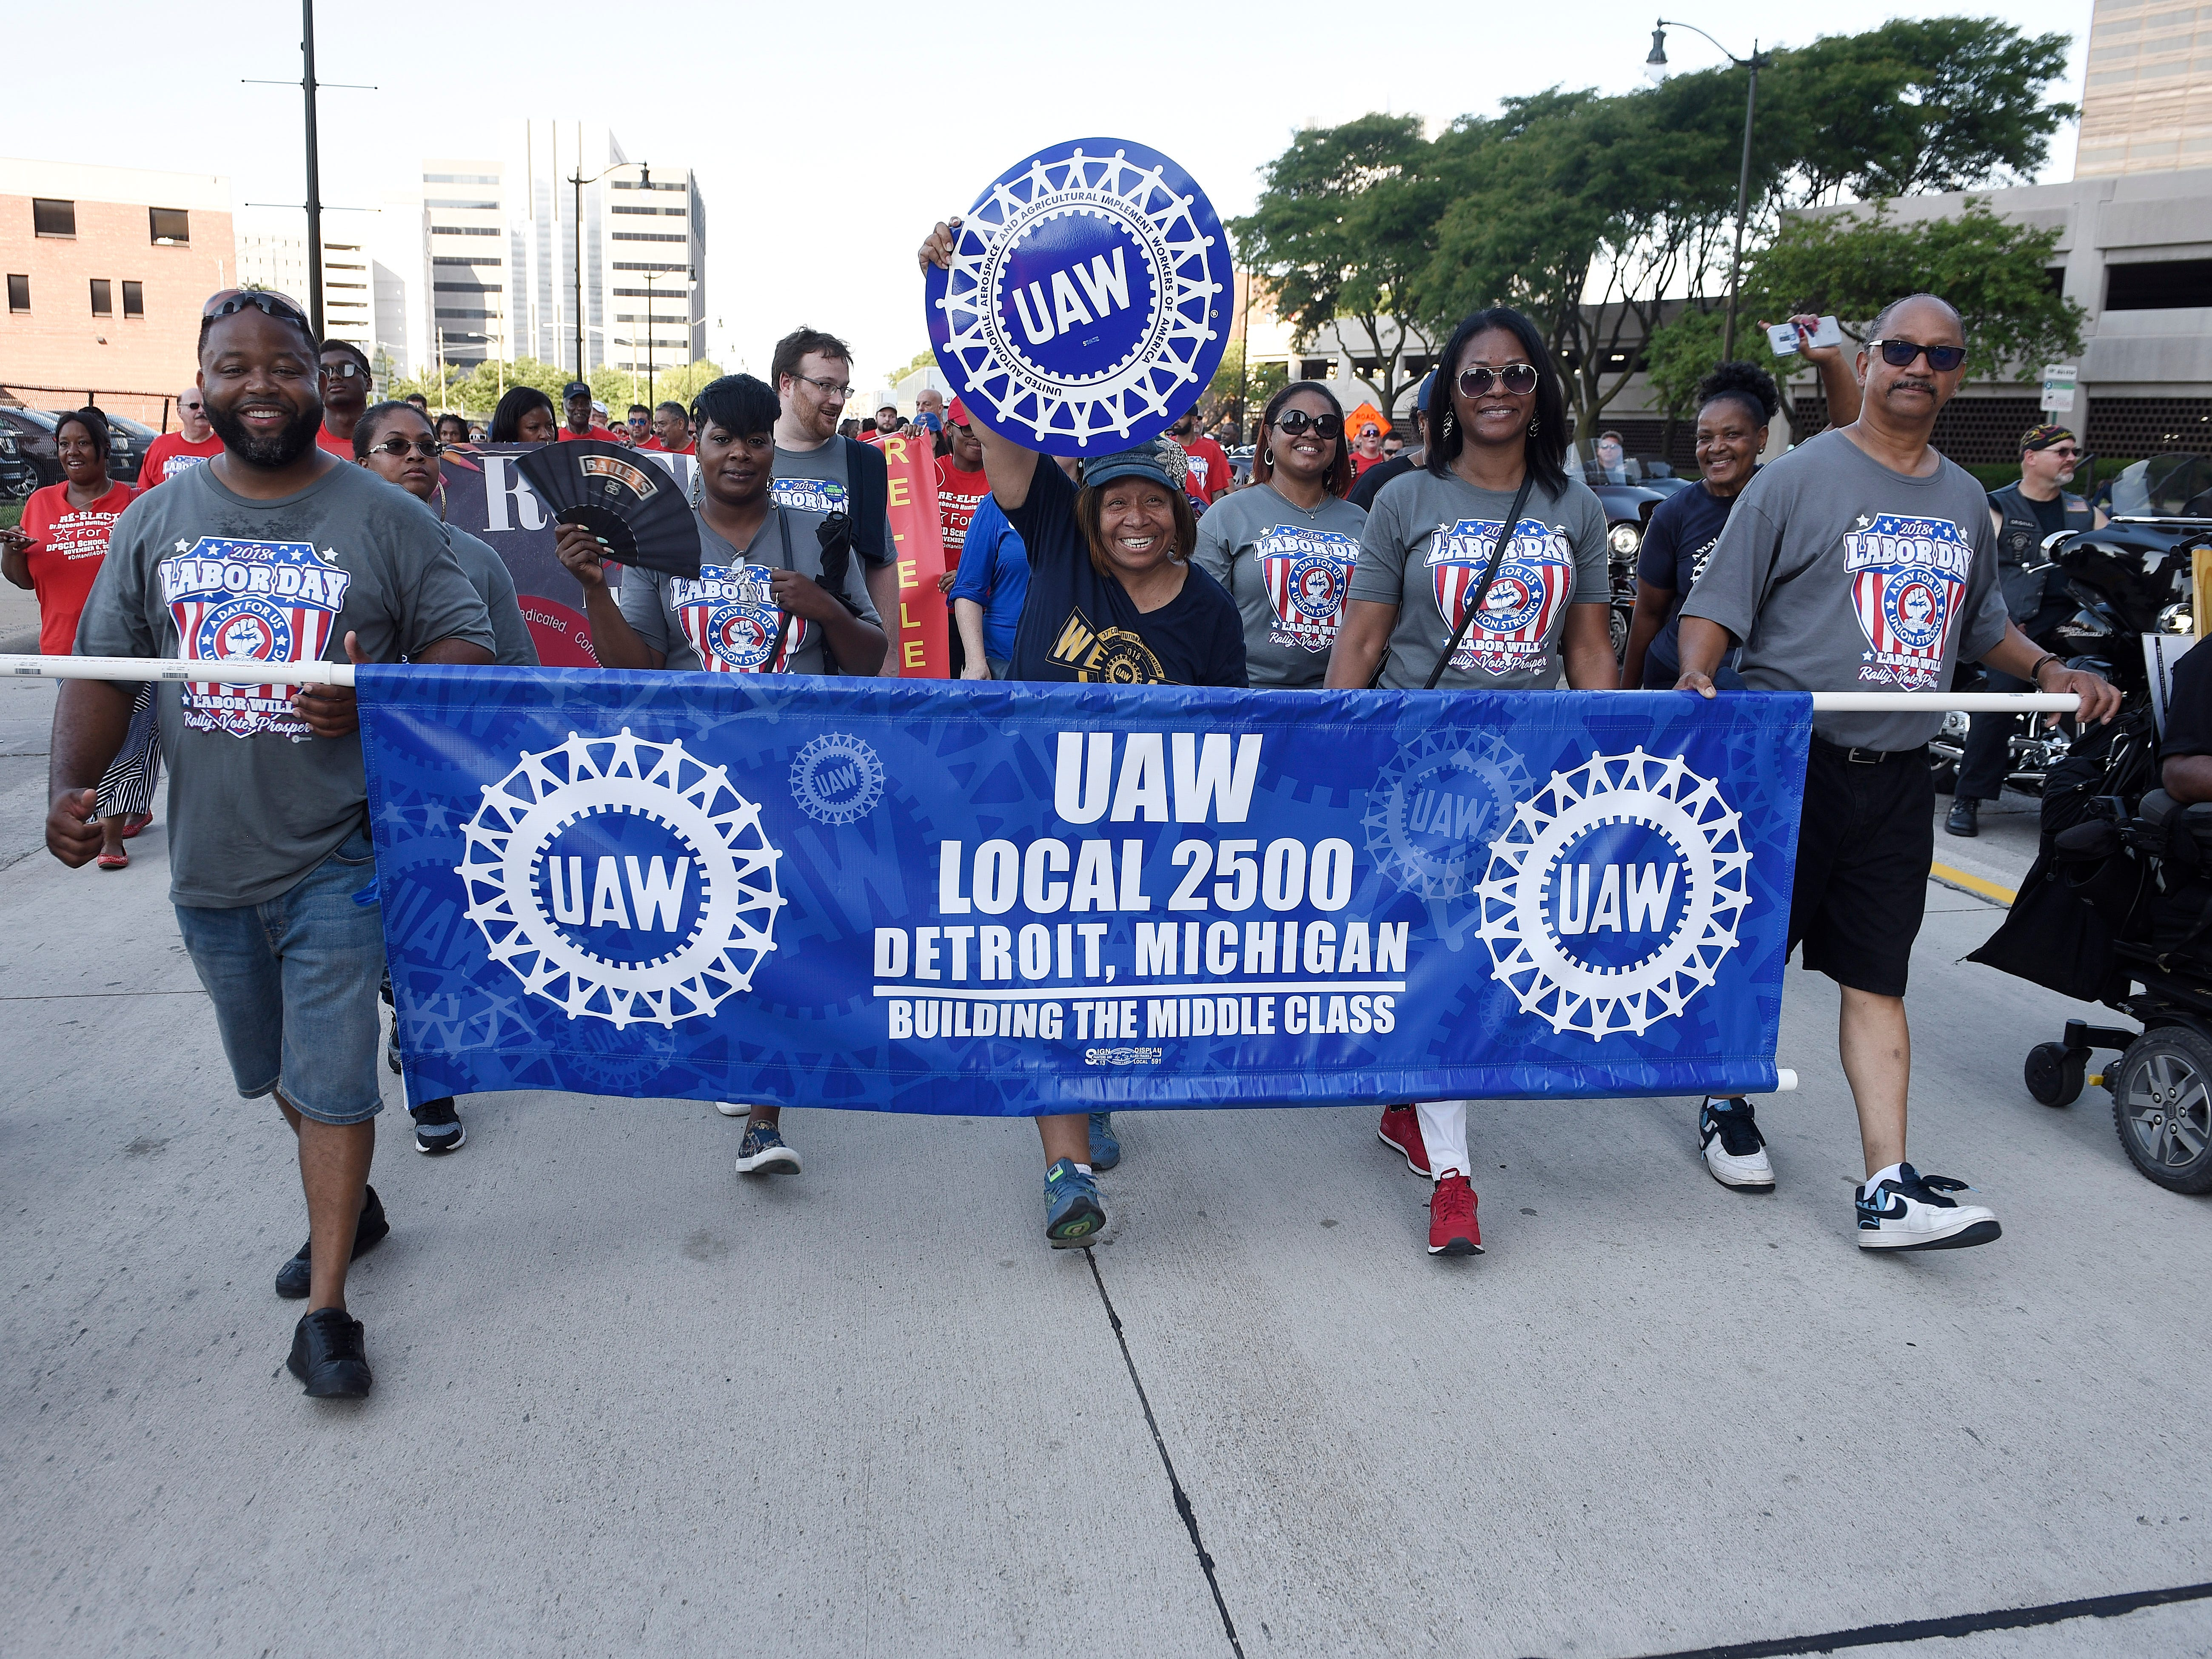 Members of UAW Local 2500 walk the parade route.